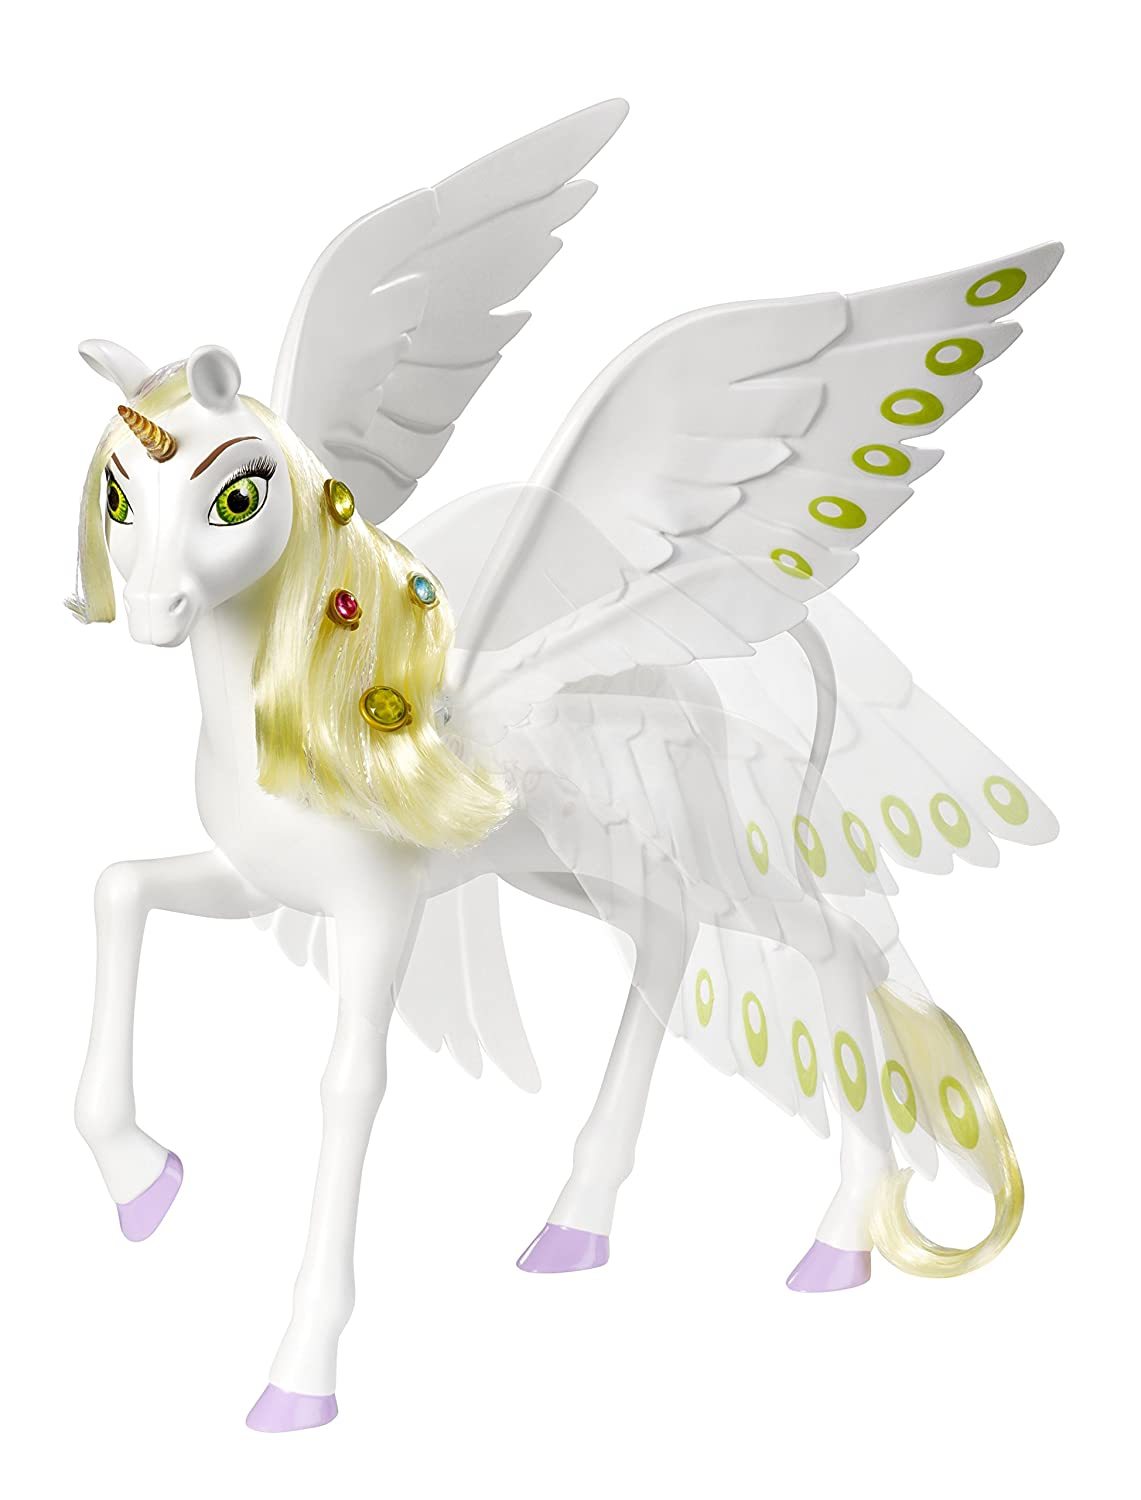 Amazon com mia me onchao unicorn by mattel by sportsmarket toys games